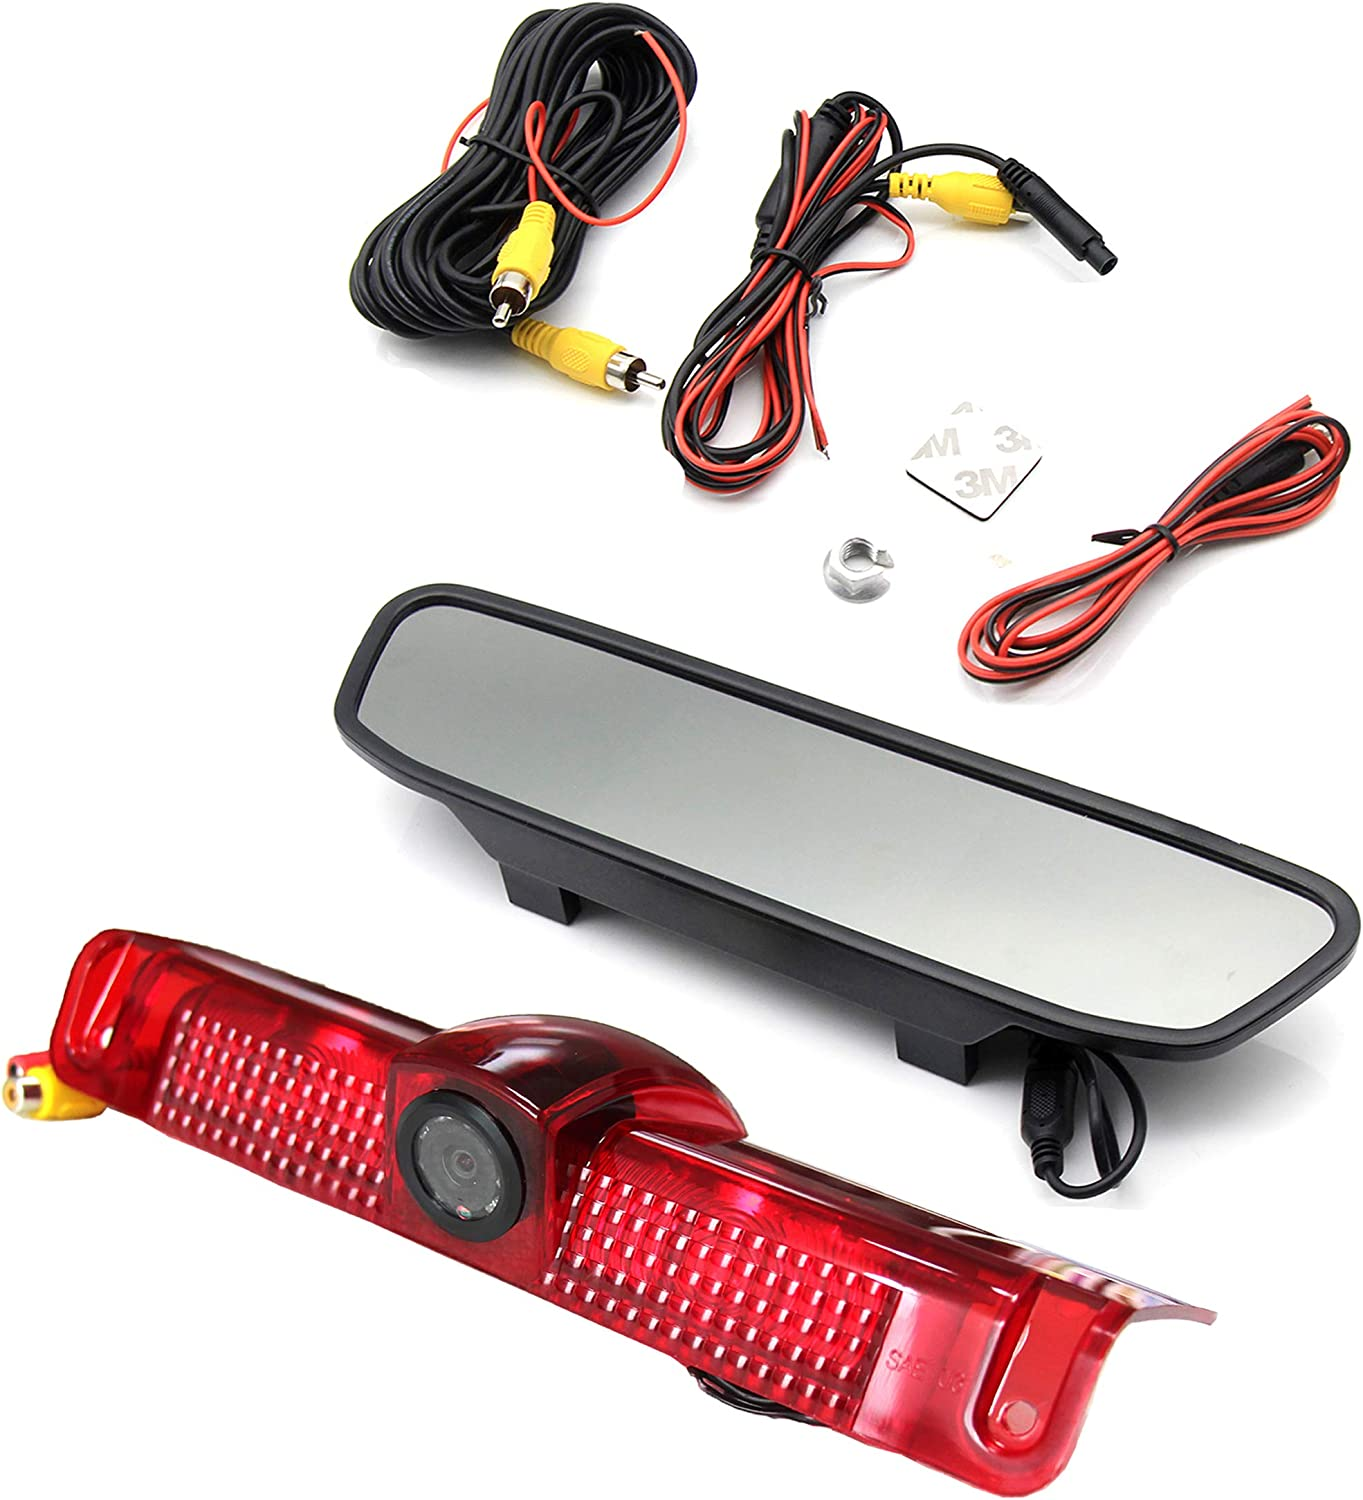 Backup Brake Light Rear View Camera Monitor For Chevrolet Express GMC Savana Van